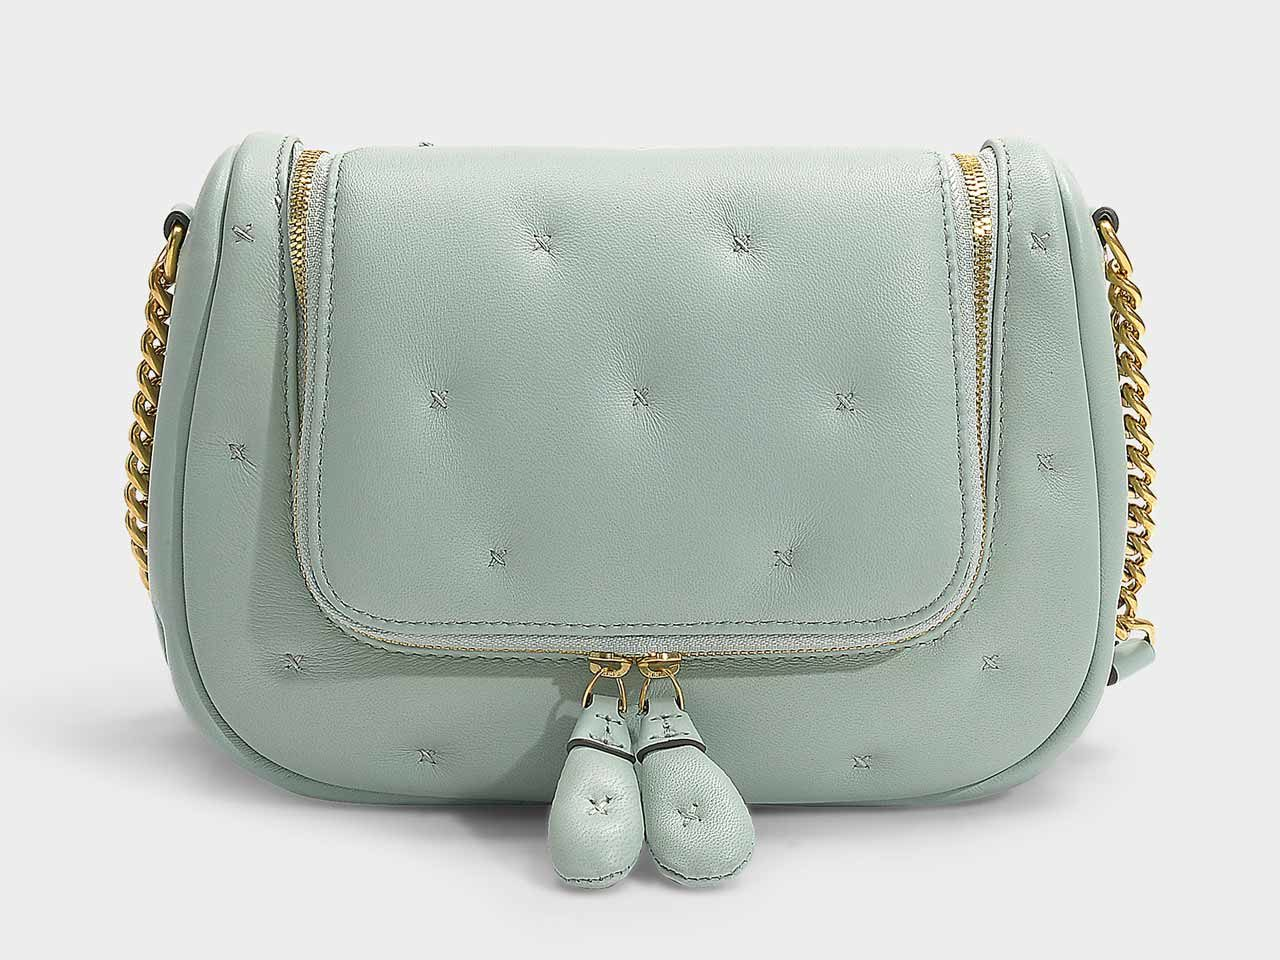 Besace Vere Soft Chubby Anya Hindmarch